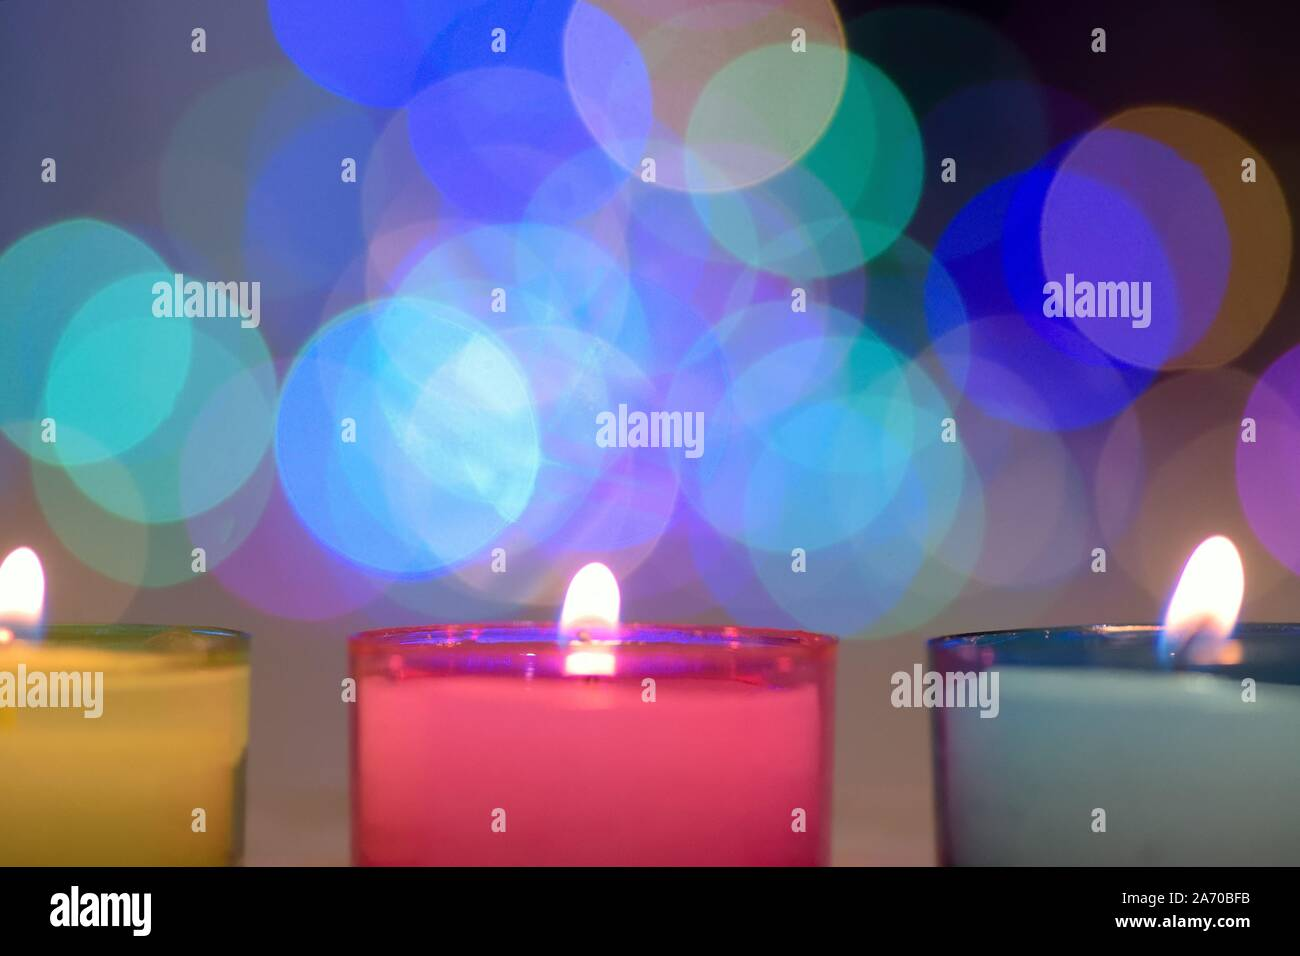 Colorful Candles with blurred background lights Stock Photo